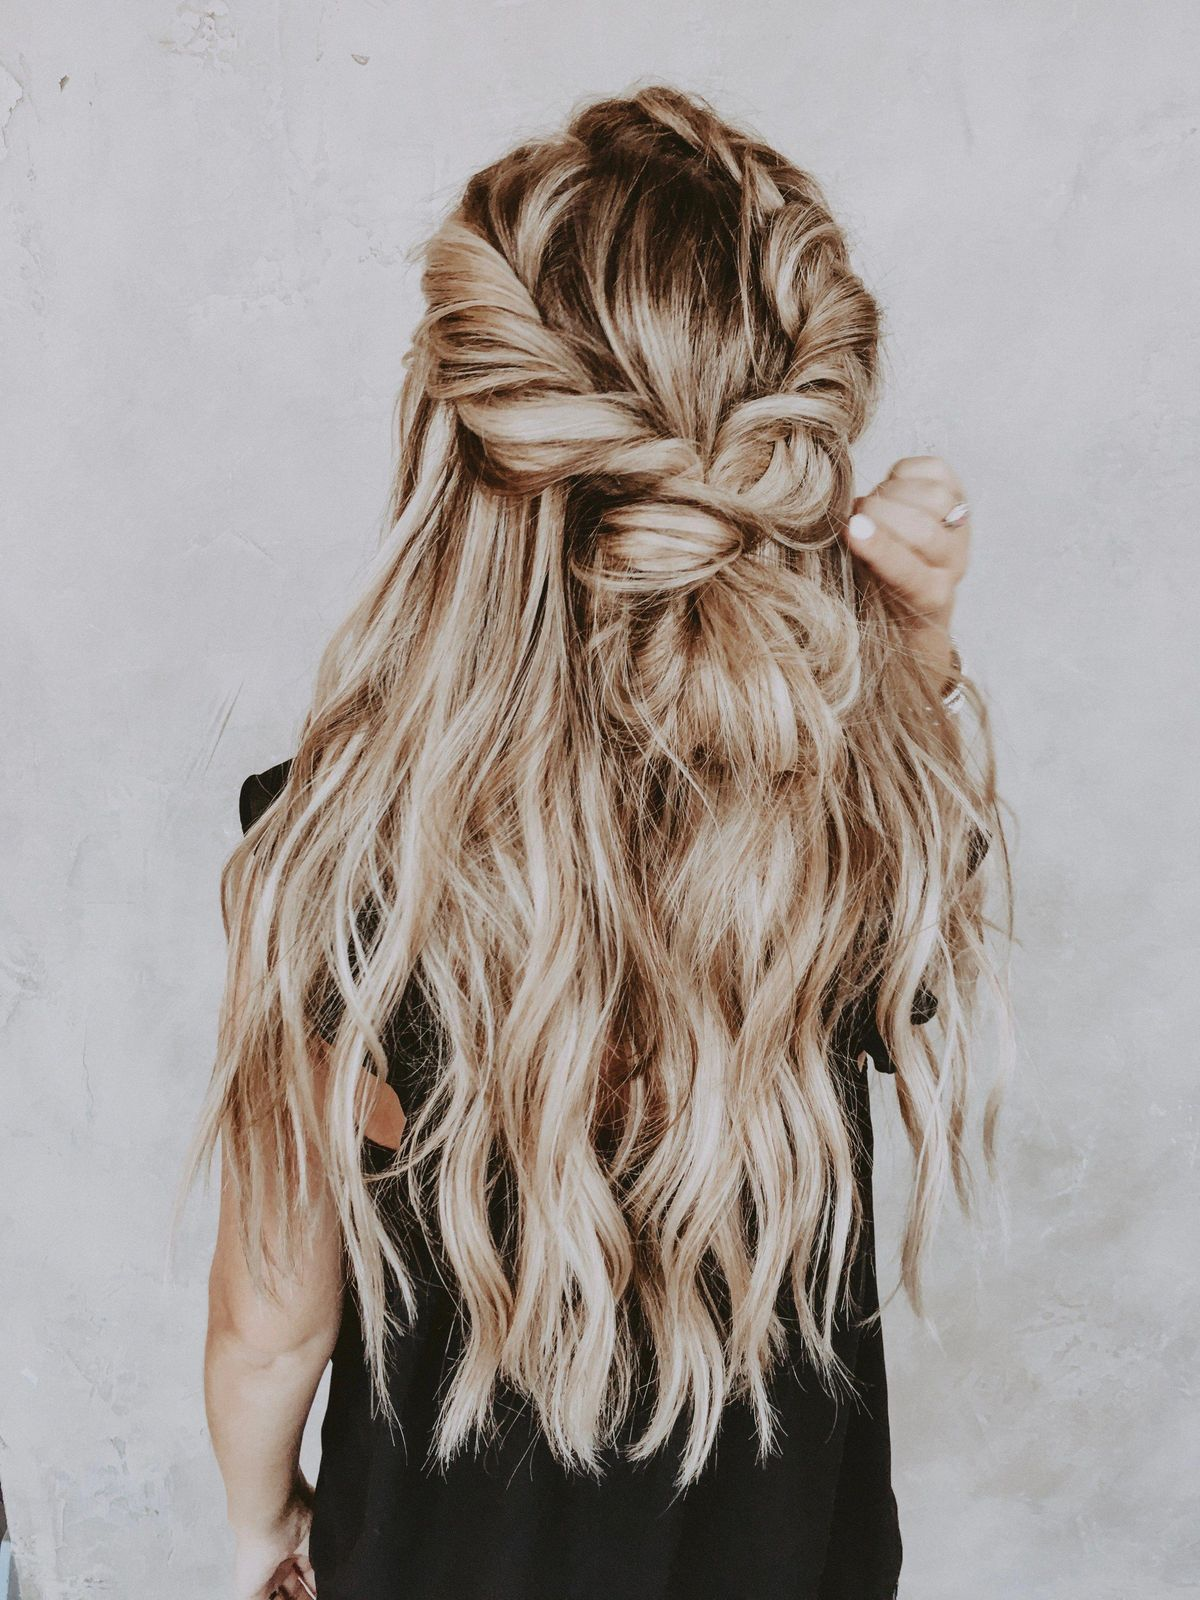 """easy braid with extensions <a class=""""pintag"""" href=""""/explore/braidedhairstyles/"""" title=""""#braidedhairstyles explore Pinterest"""">#braidedhairstyles</a><p><a href=""""http://www.homeinteriordesign.org/2018/02/short-guide-to-interior-decoration.html"""">Short guide to interior decoration</a></p>"""